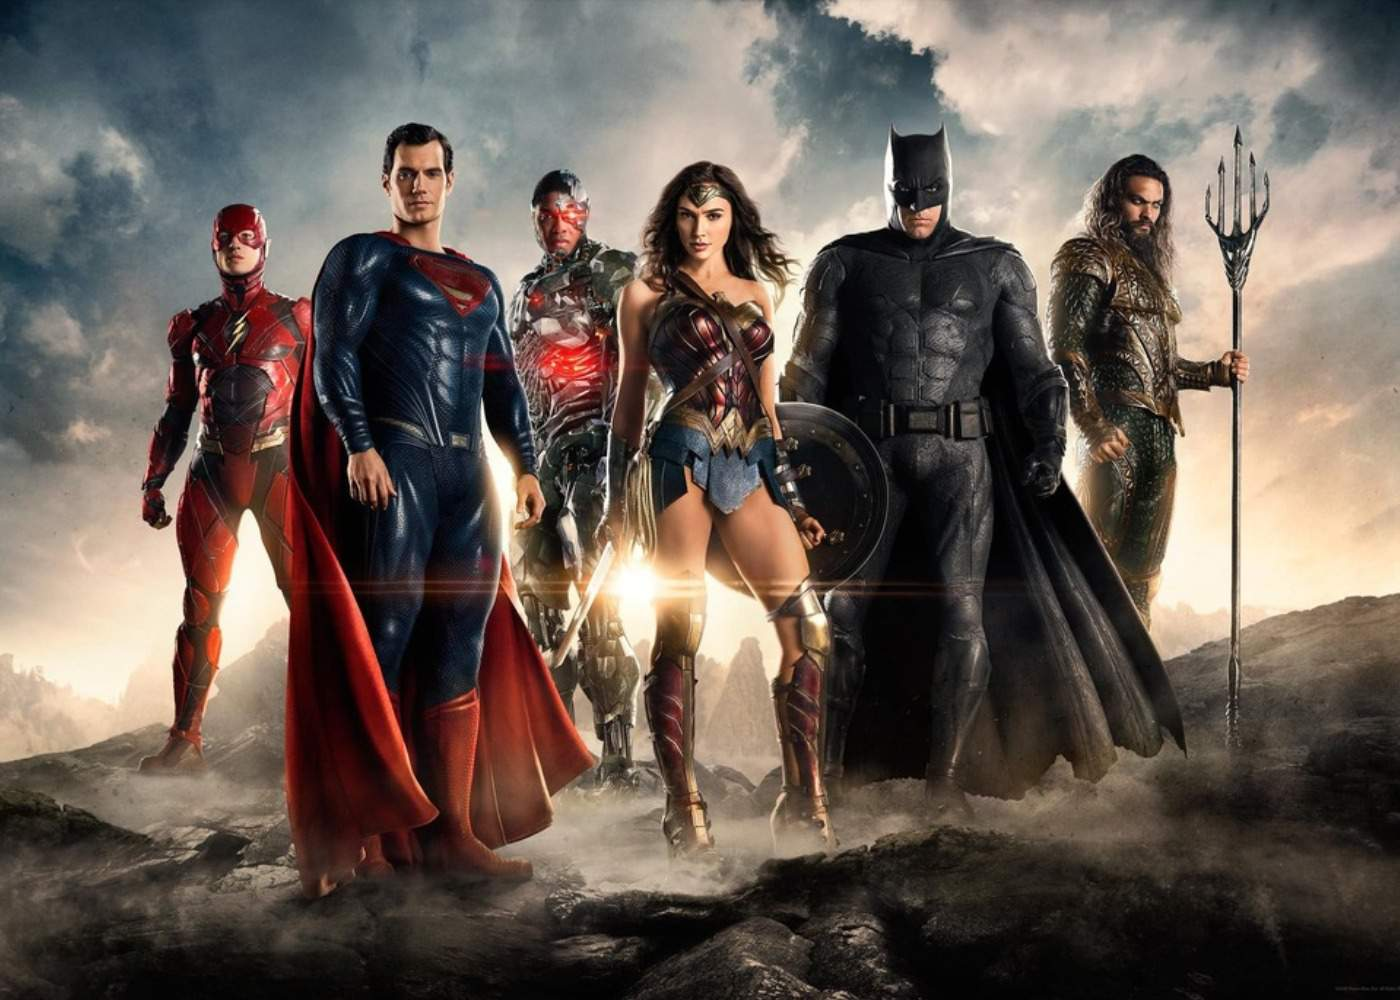 Zack Snyder to Conduct Justice League Reshoots with Henry Cavill, Ben Affleck, and More